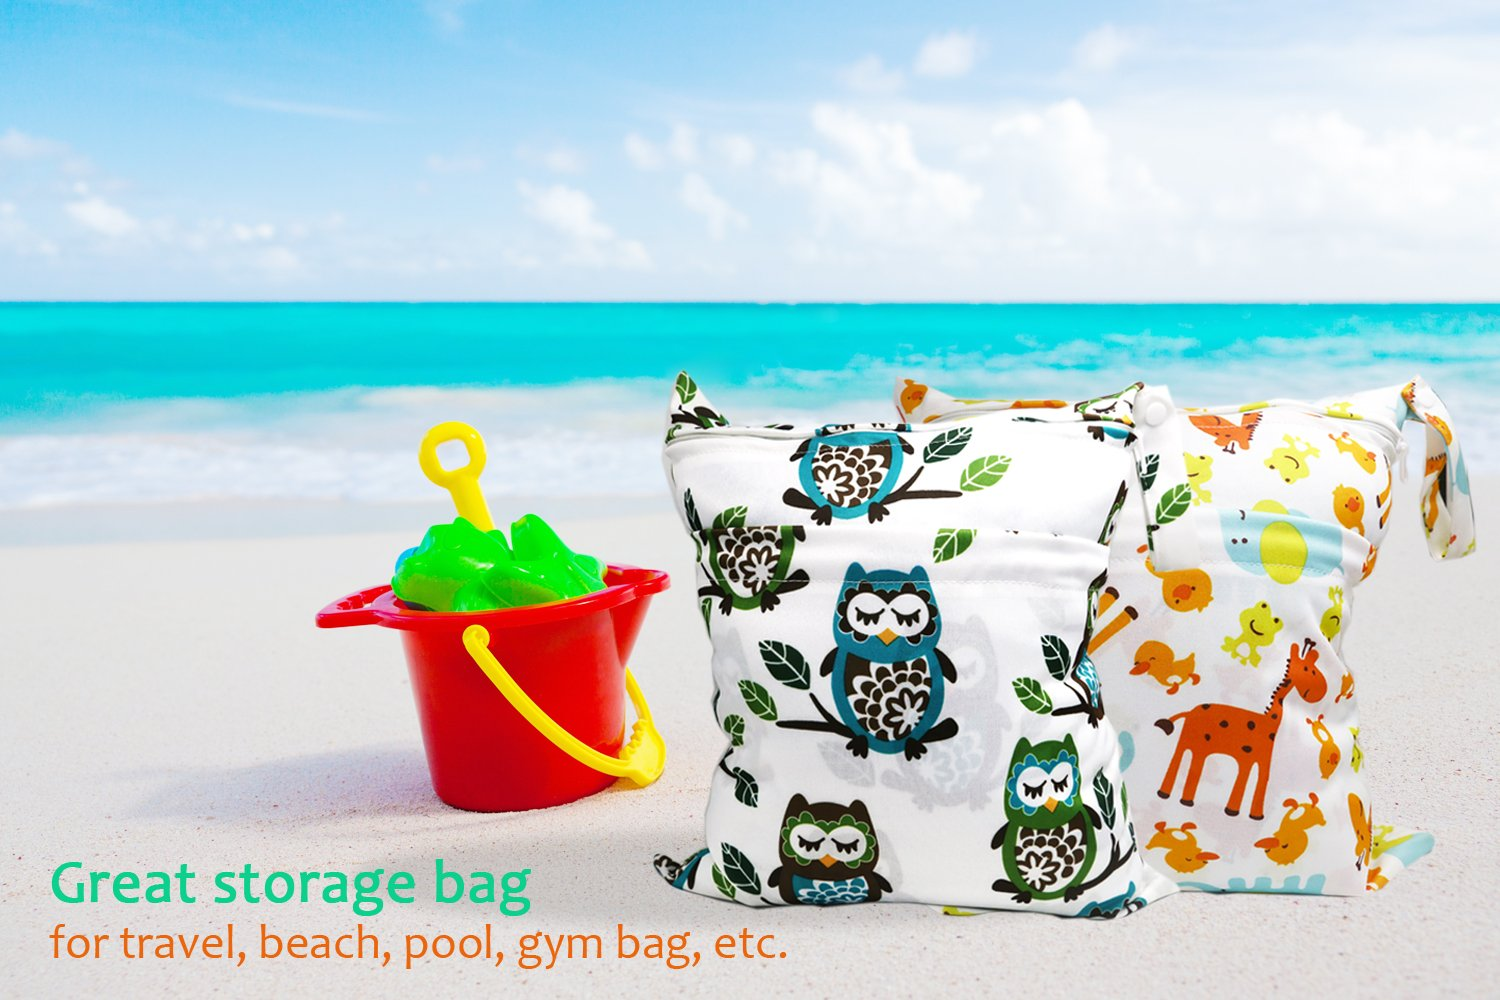 Owl + Giraffe Nappy Organizer Bag Breast Pump with 2 Pockets Washable /& Reusable Baby Wet and Dry Cloth Diaper Bags Underwear Multipurpose Travel Packing Organizer Bags for Swimsuit